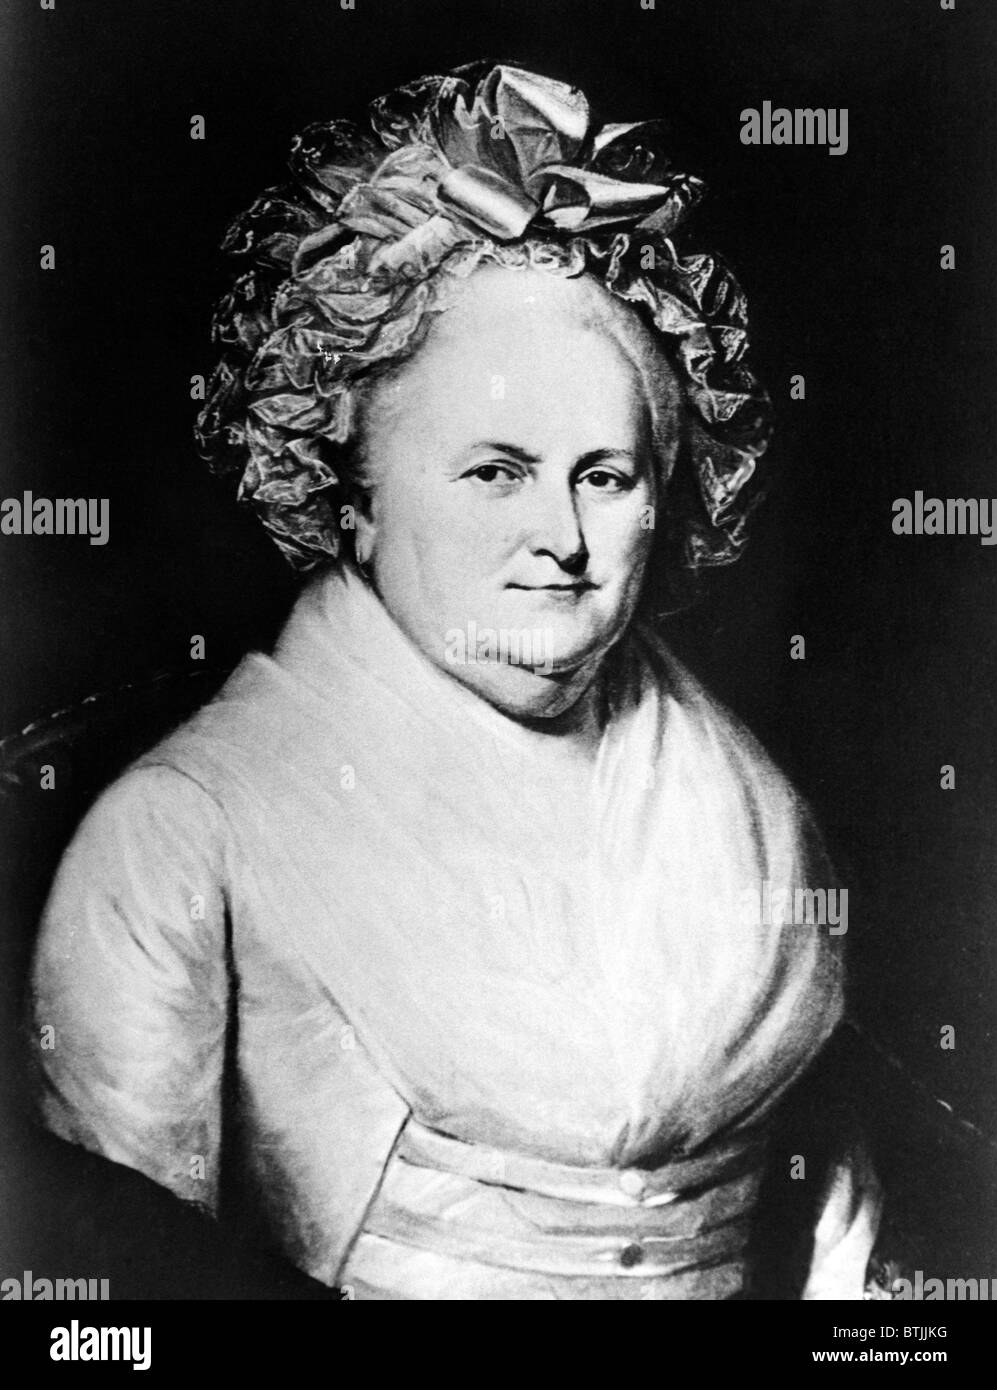 a biography of martha washington the first first lady of the united states Biography of martha washington home  martha washington was the wife of the the first president of the united states, serving as the nation's first first lady.